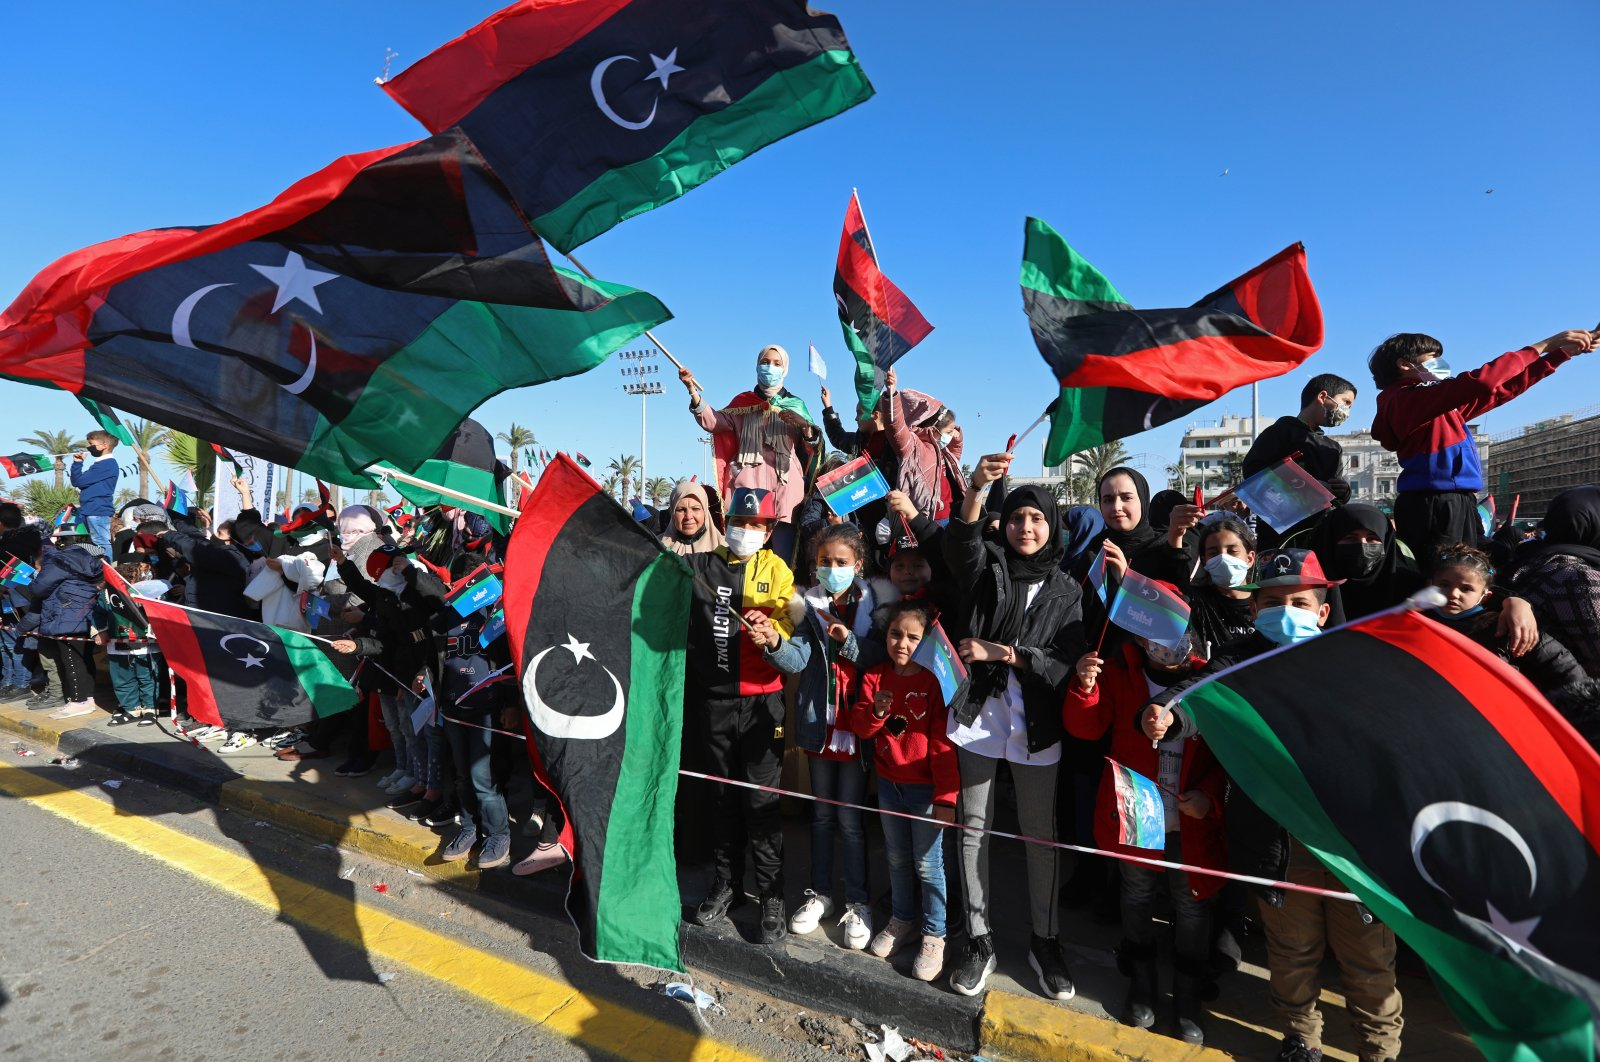 Under tight security, Libyans mark the 10th anniversary of their 2011 uprising that led to the overthrow and killing of longtime ruler Moammar Gadhafi, Tripoli, Libya, Feb. 17, 2021. (AP File Photo)